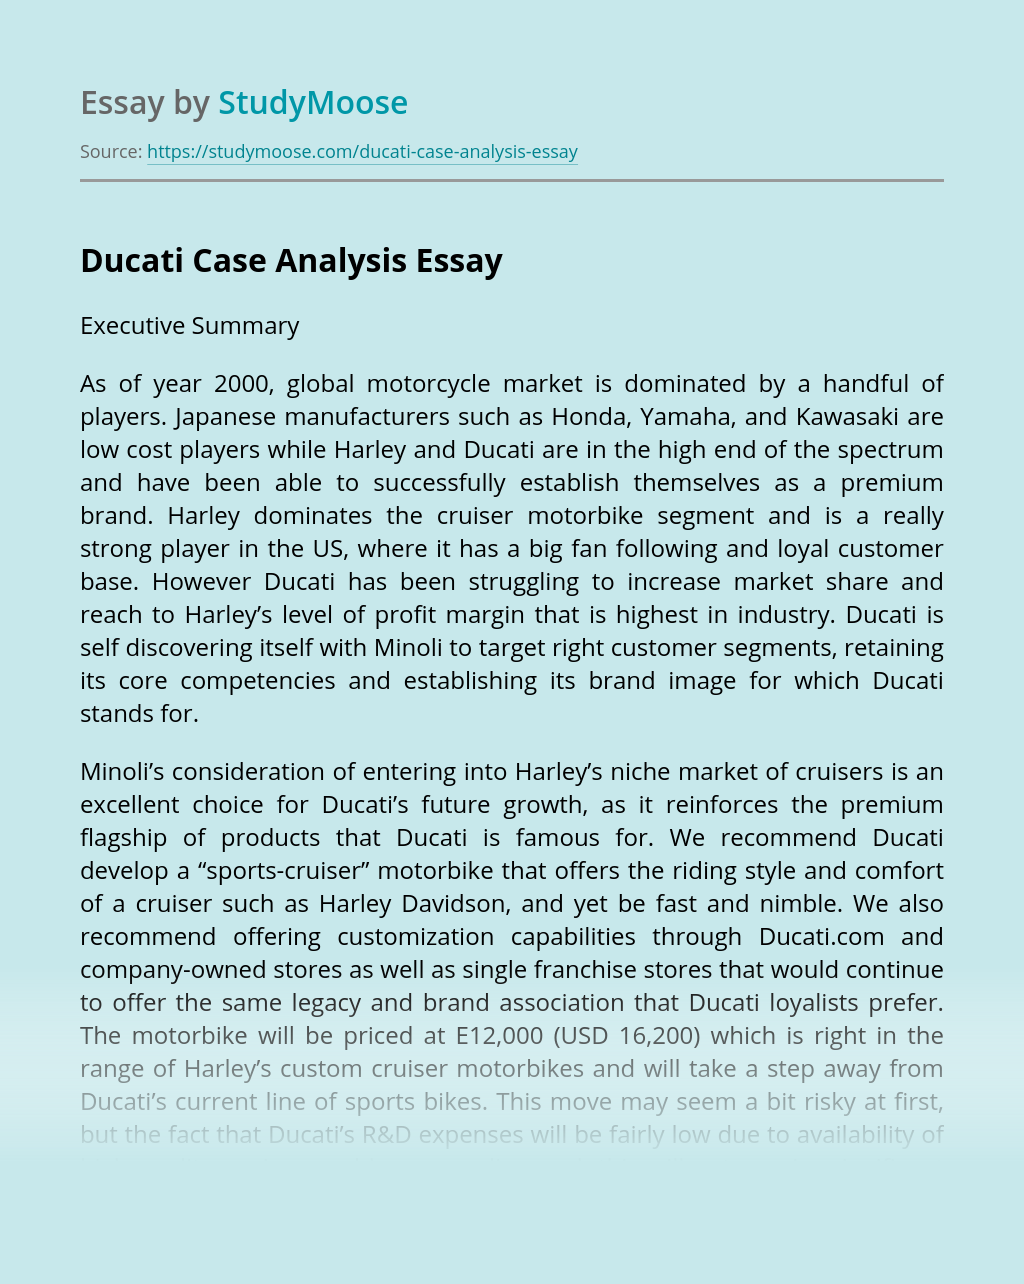 Ducati Case Analysis